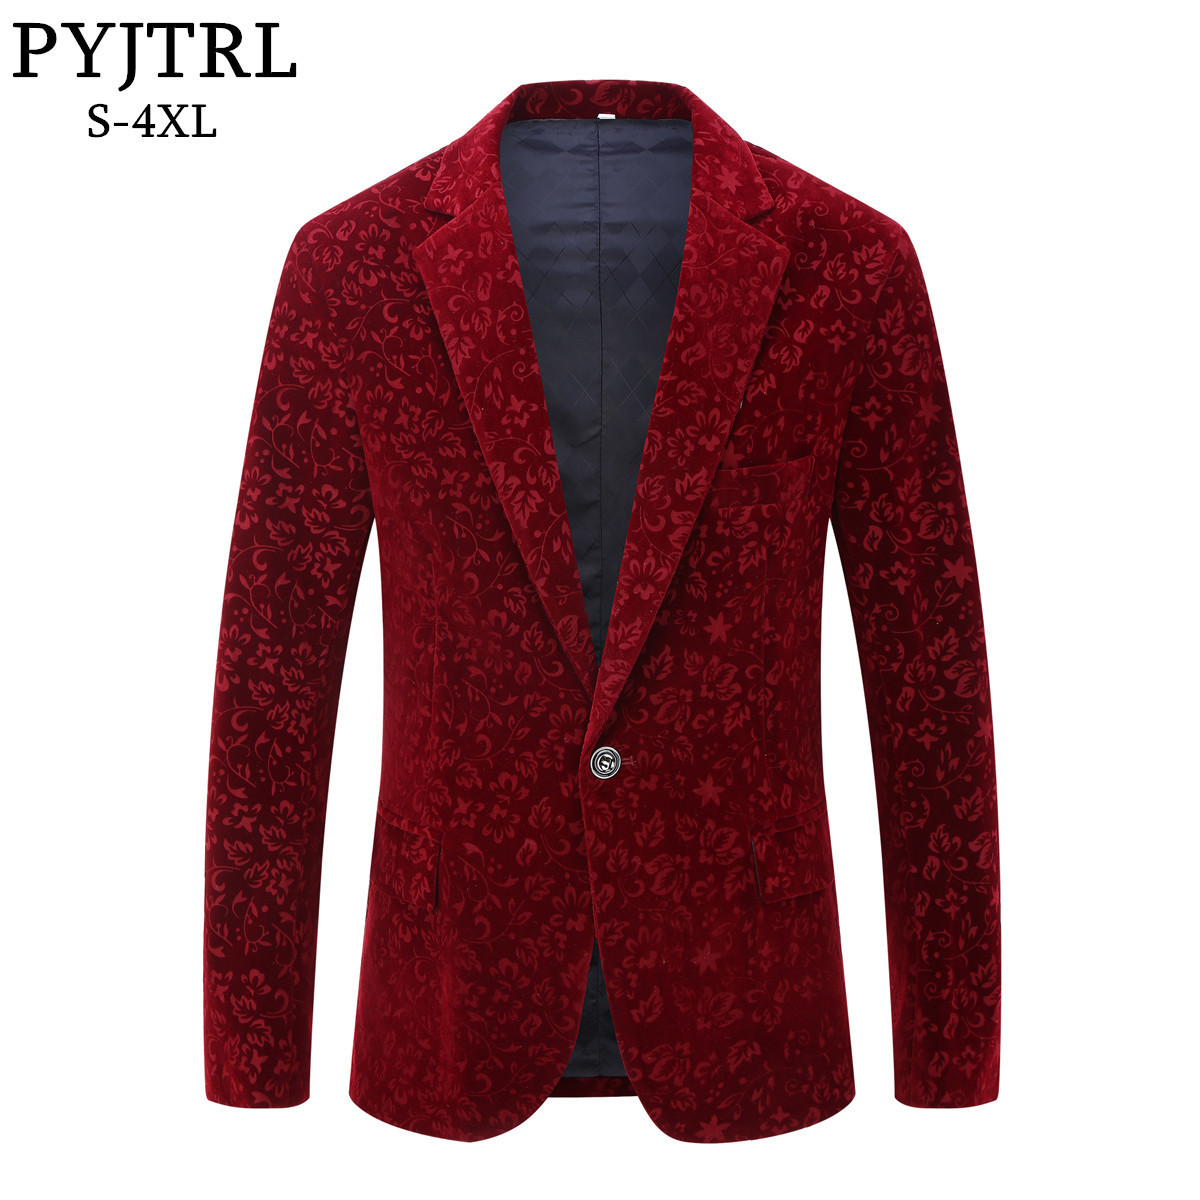 PYJTRL Men Autumn Winter Wine Red Burgundy Velvet Floral Pattern Suit Jacket Slim Fit Blazer Designs Stage Costumes For Singers